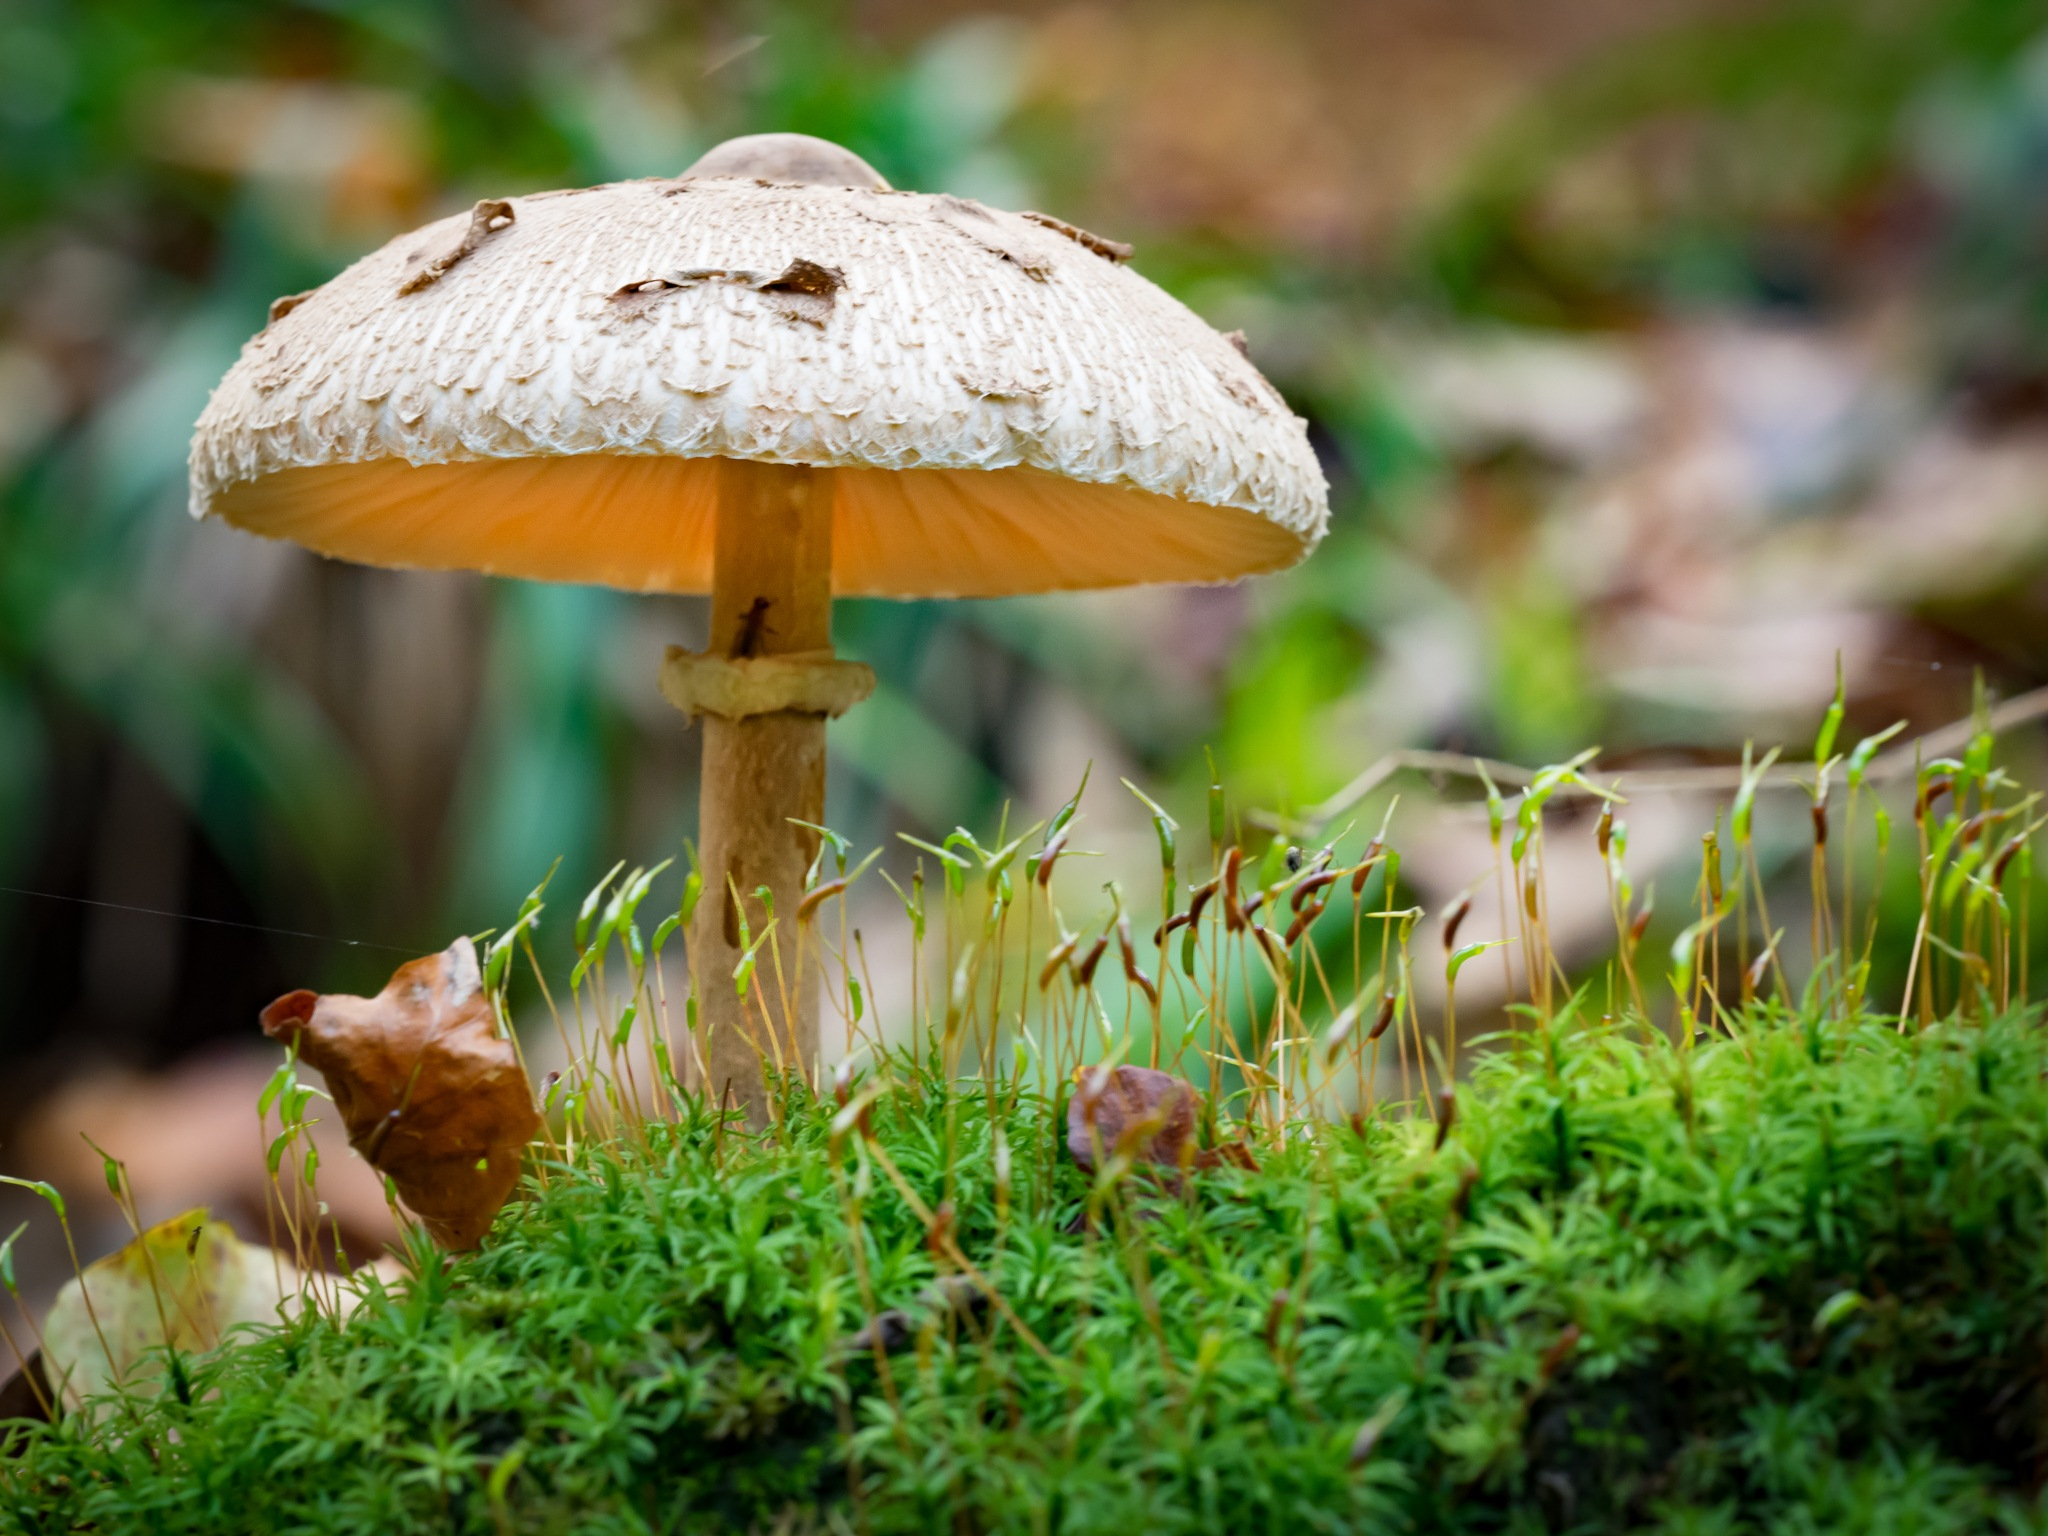 One more Mushroom by pixer